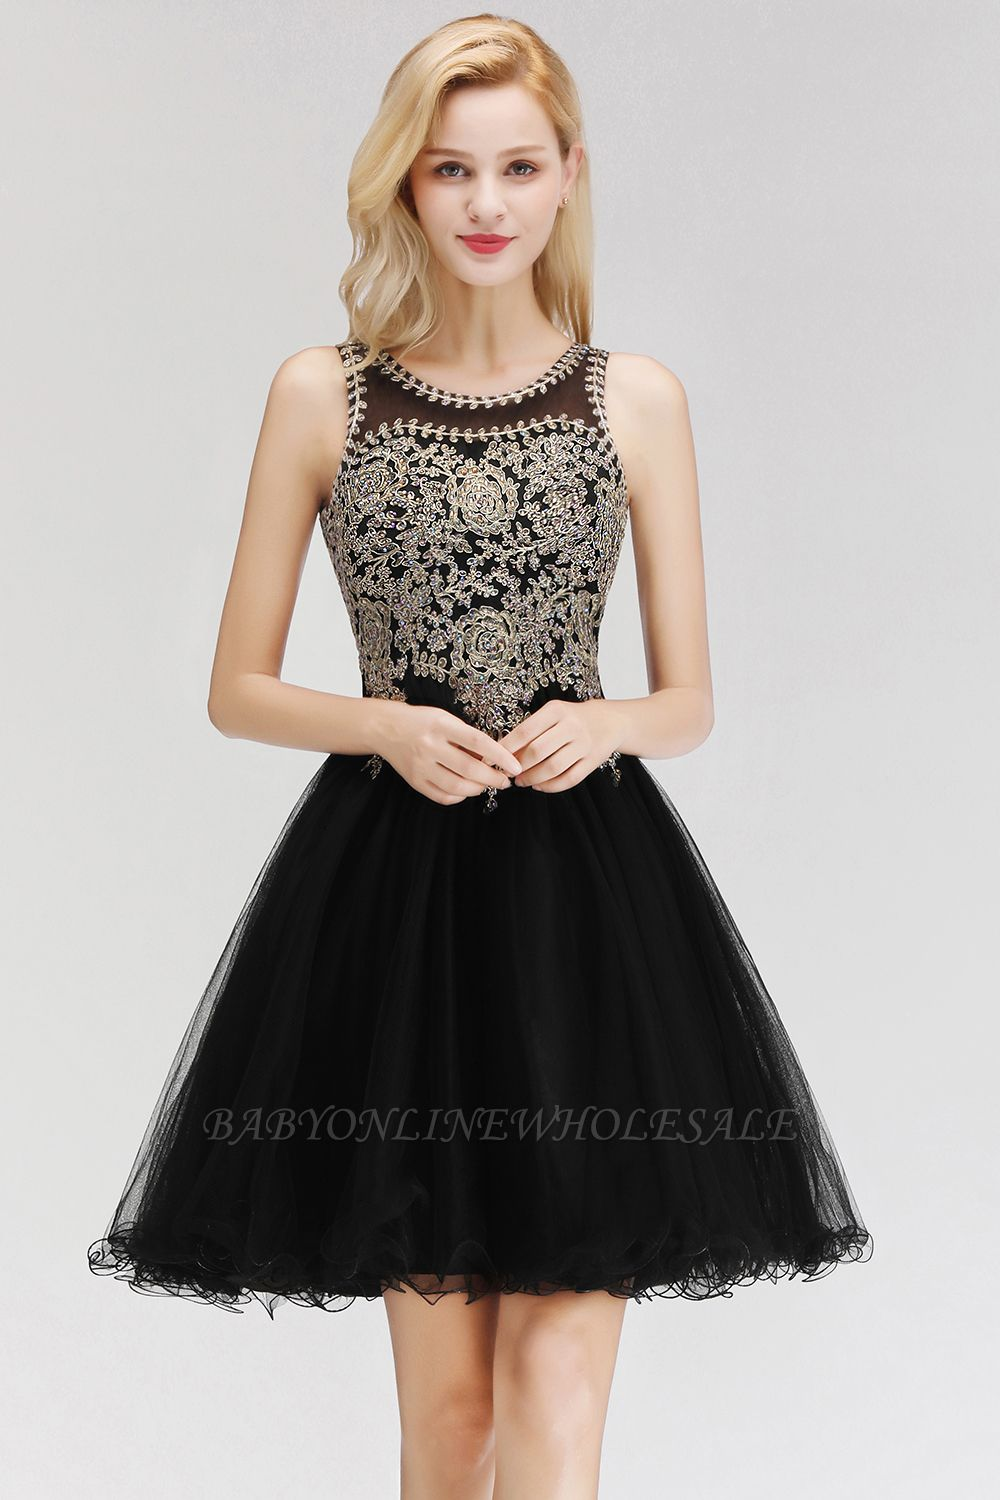 Cute Crew Neck Puffy Homecoming Dresses with Lace Appliques | Beaded Sleeveless Open back Black Teens Dress for Cocktail